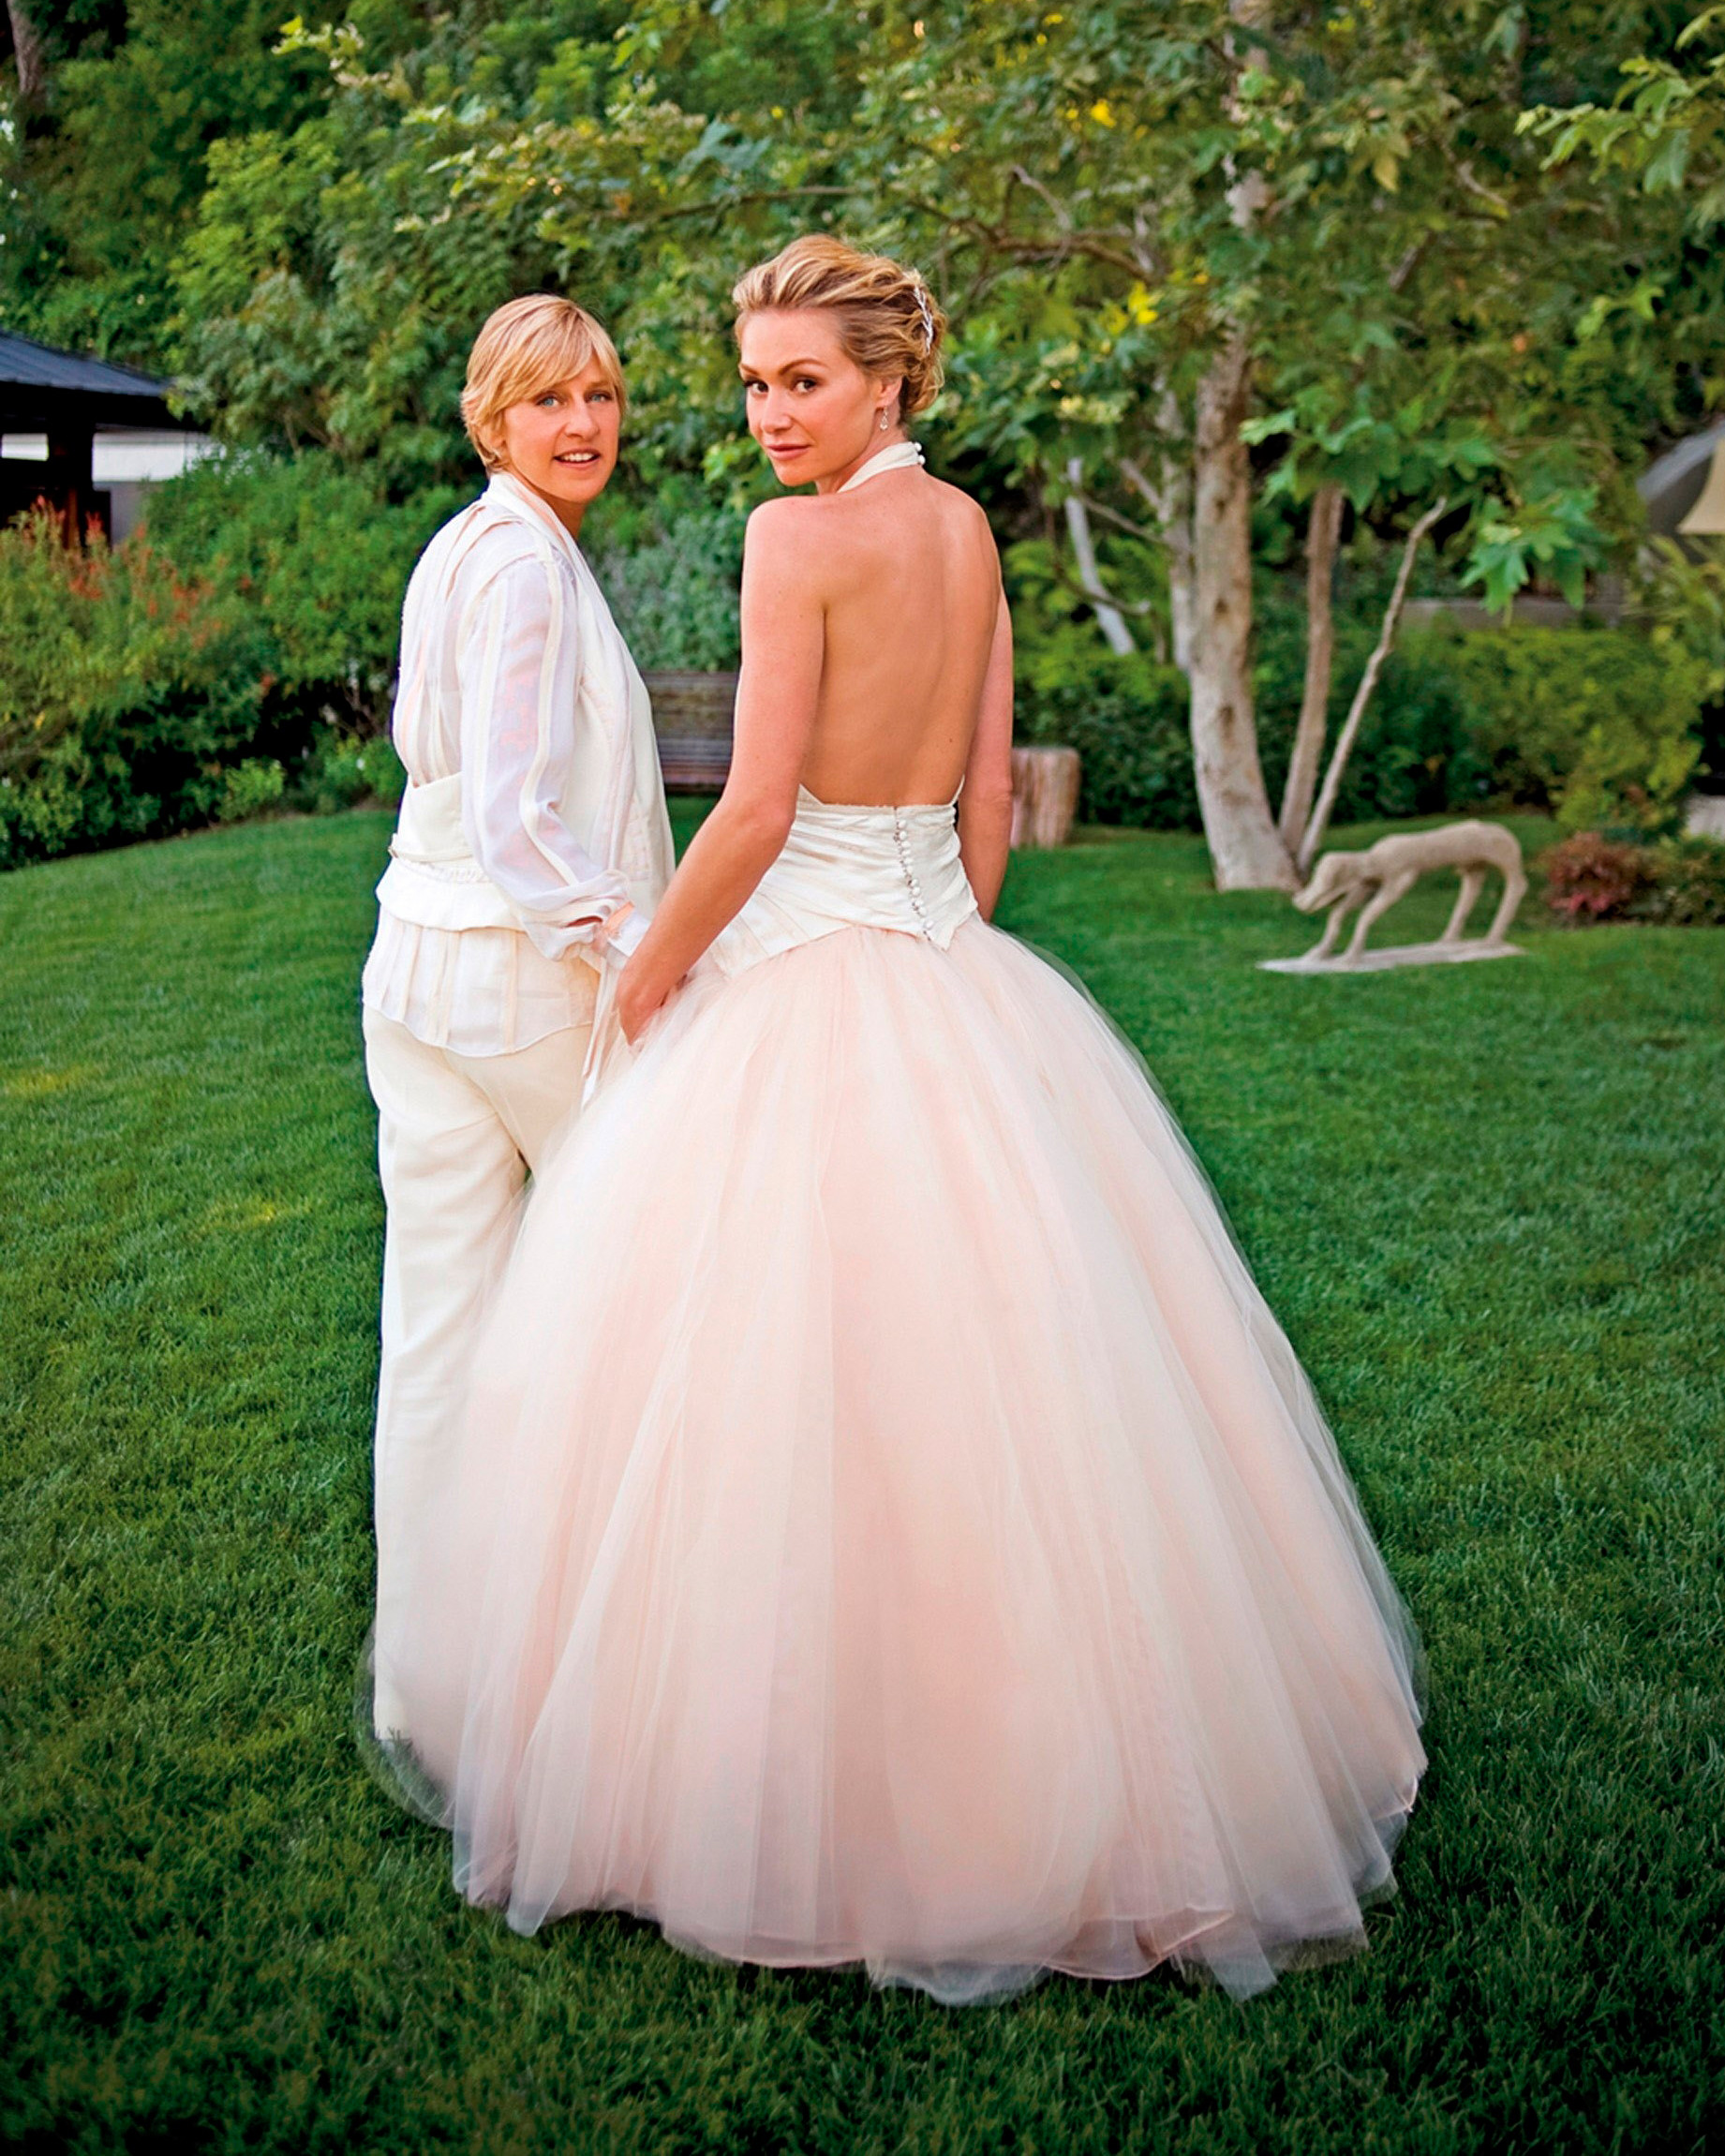 Celebrity Wedding Guest Outfits 2019: Celebrity Brides Who Wore Pink Wedding Dresses